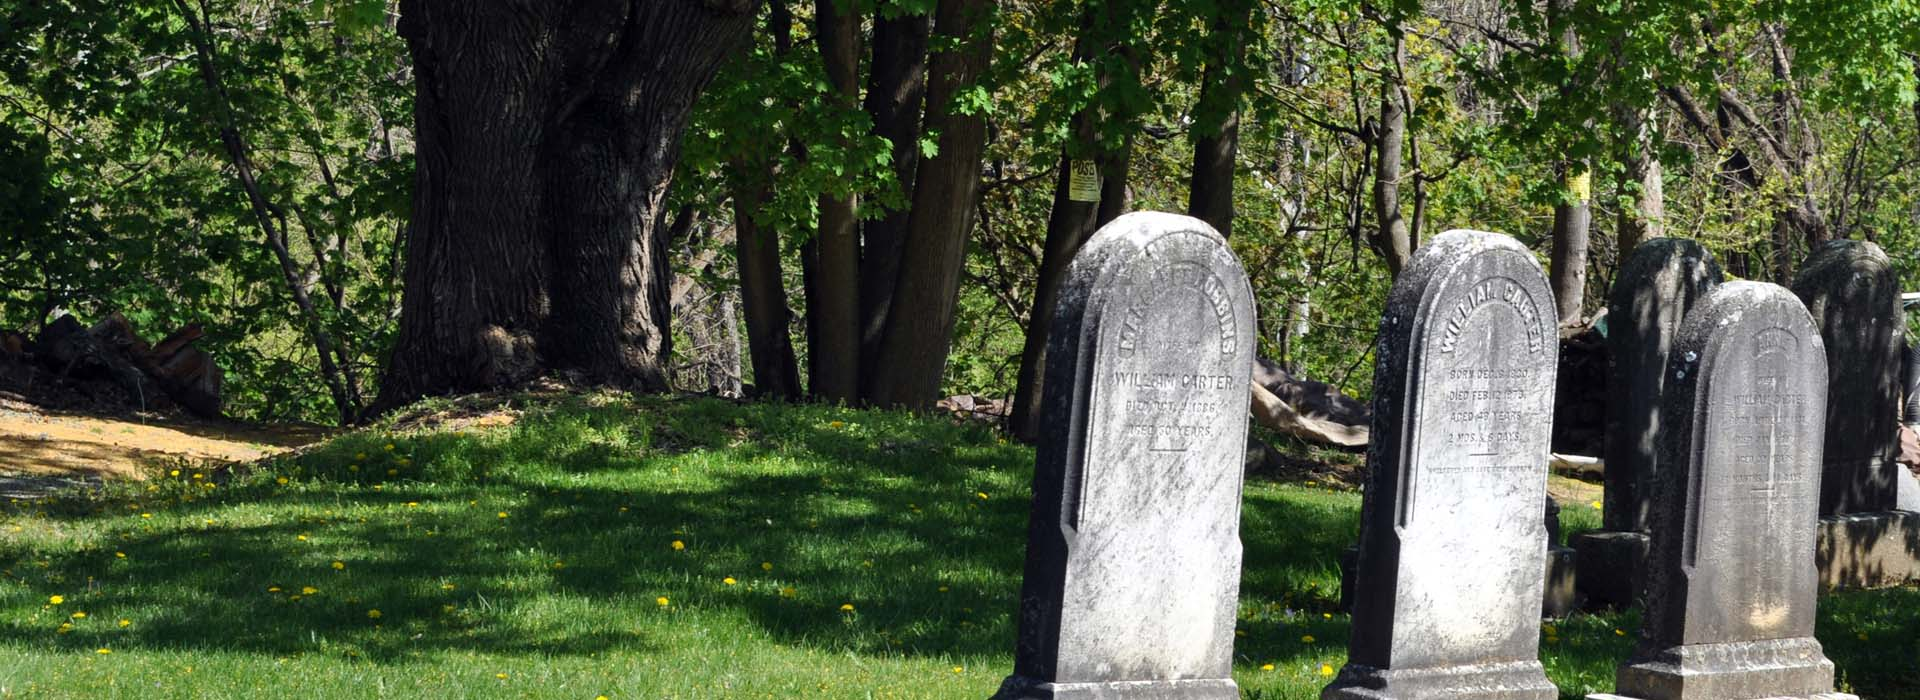 Greenwich Cemetery is not just about the past